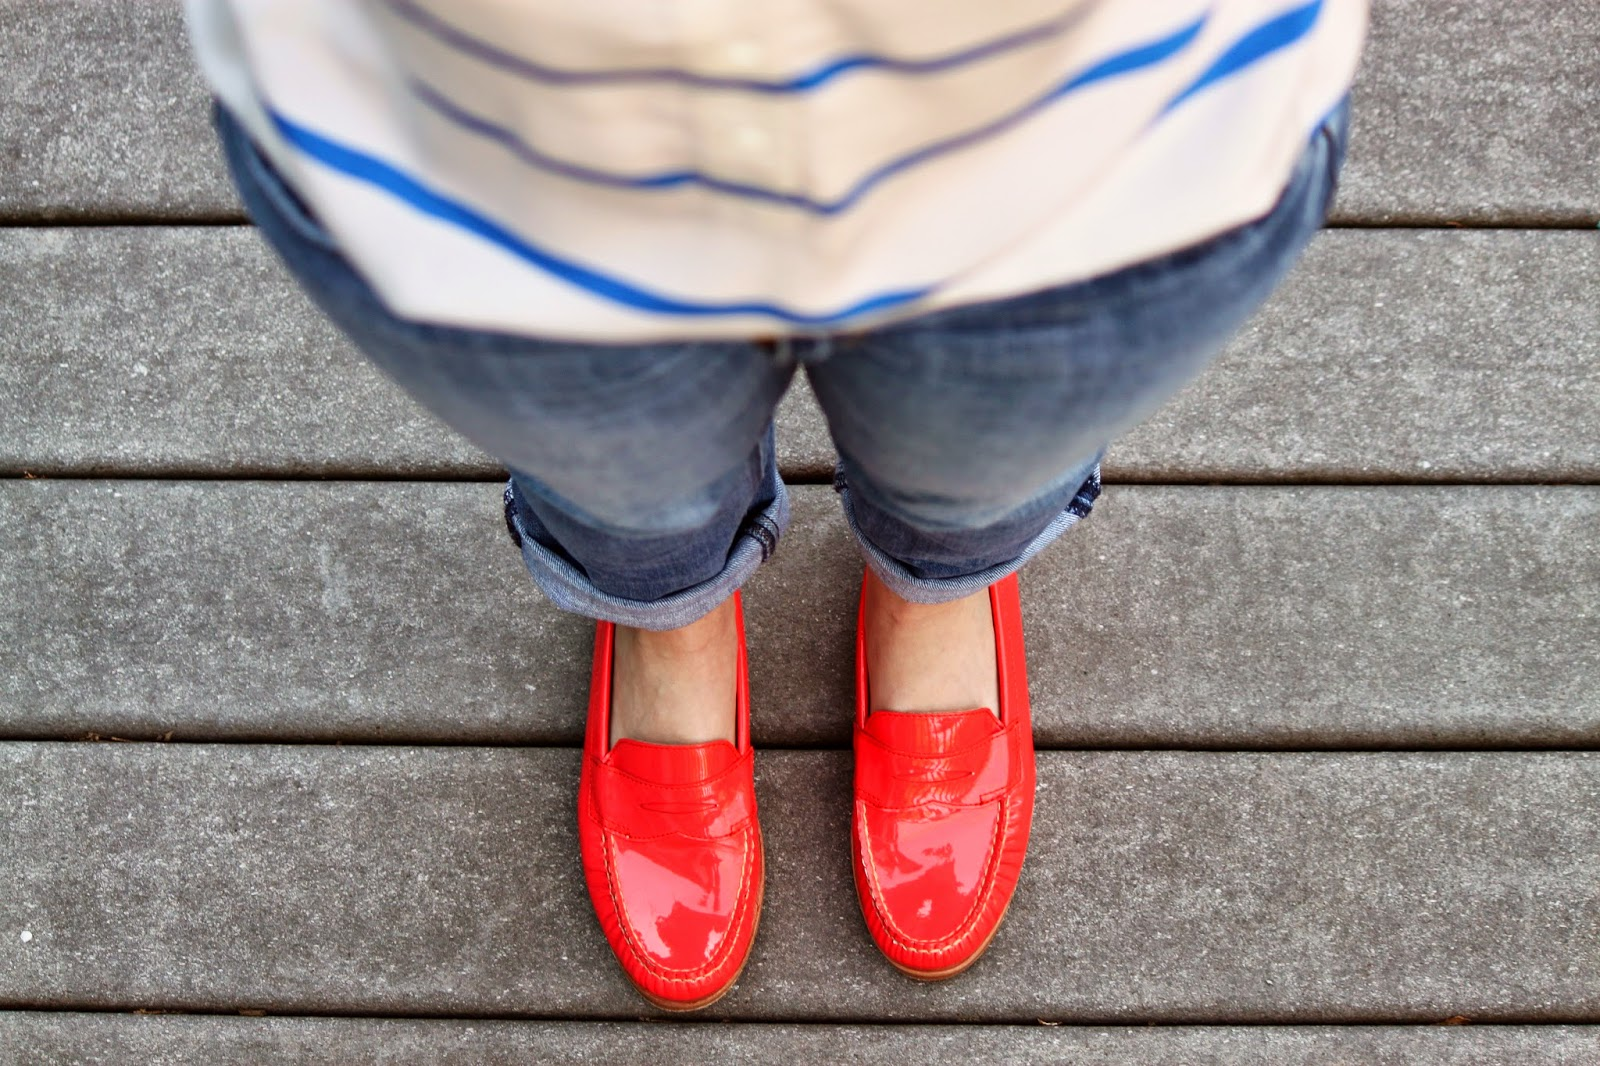 Coral + Cobalt Blue Stripes (#JCrew #EastlandShoe) // The Salty Hanger